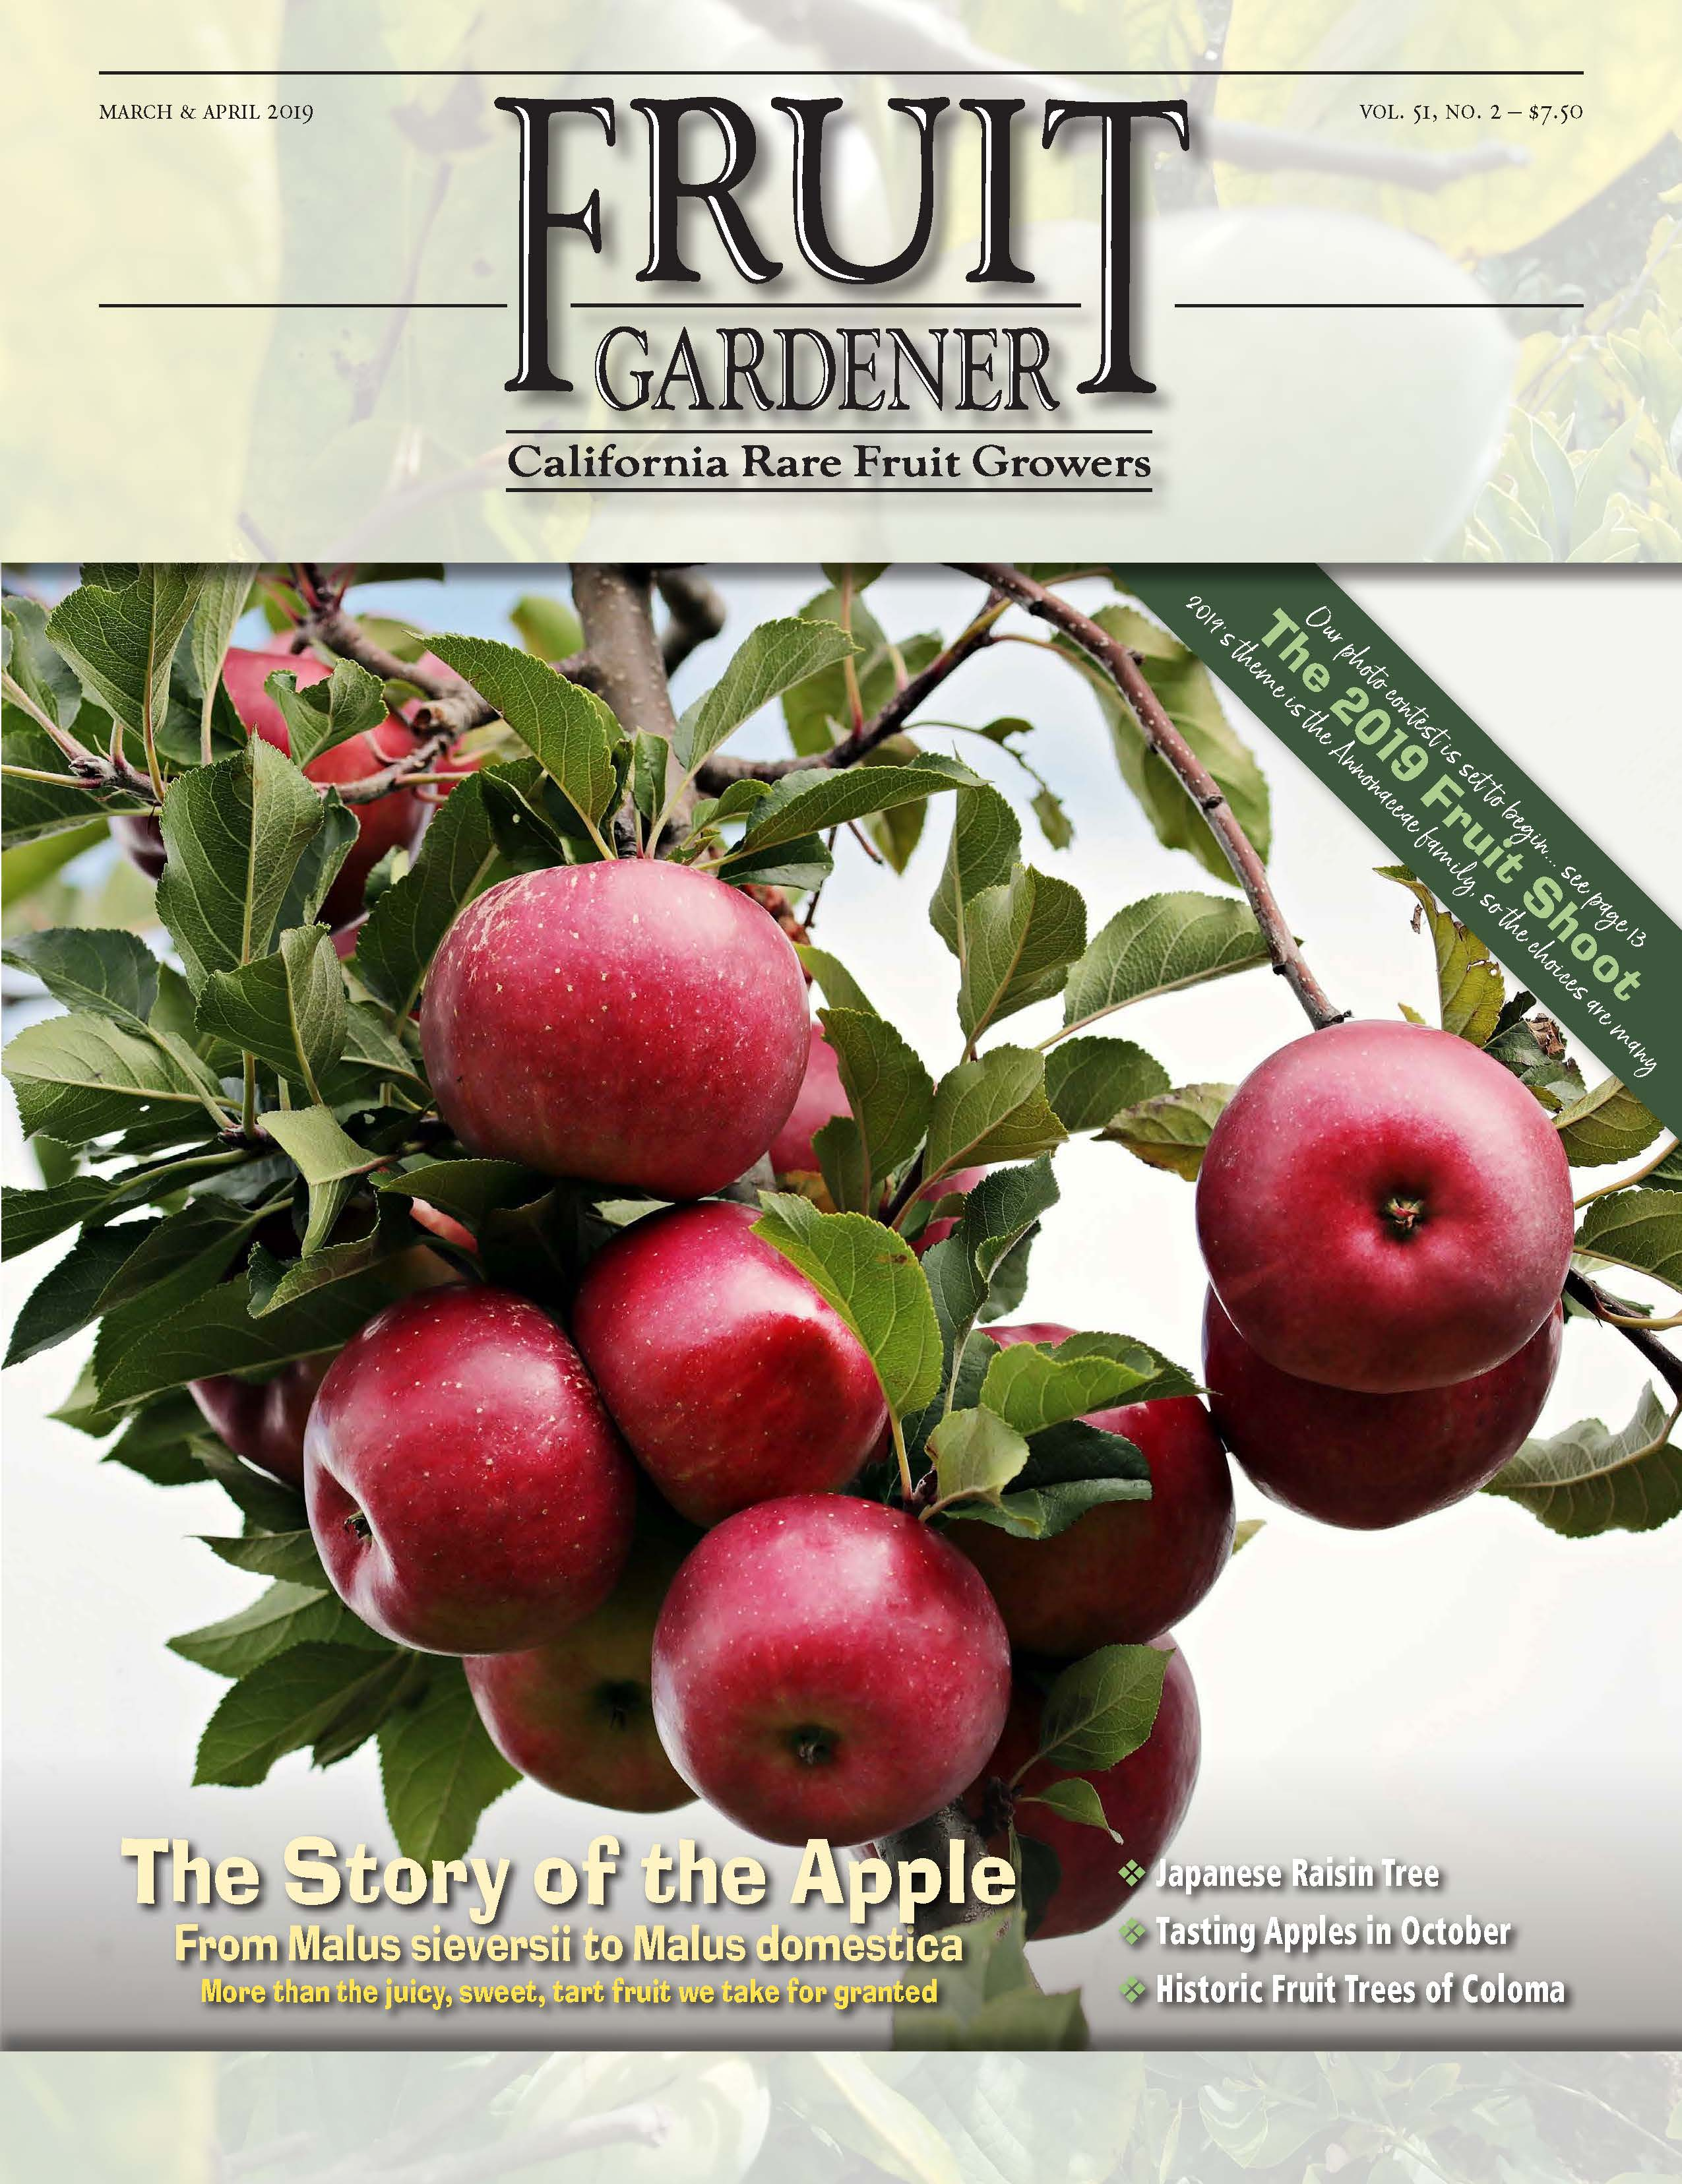 The Fruit Gardener